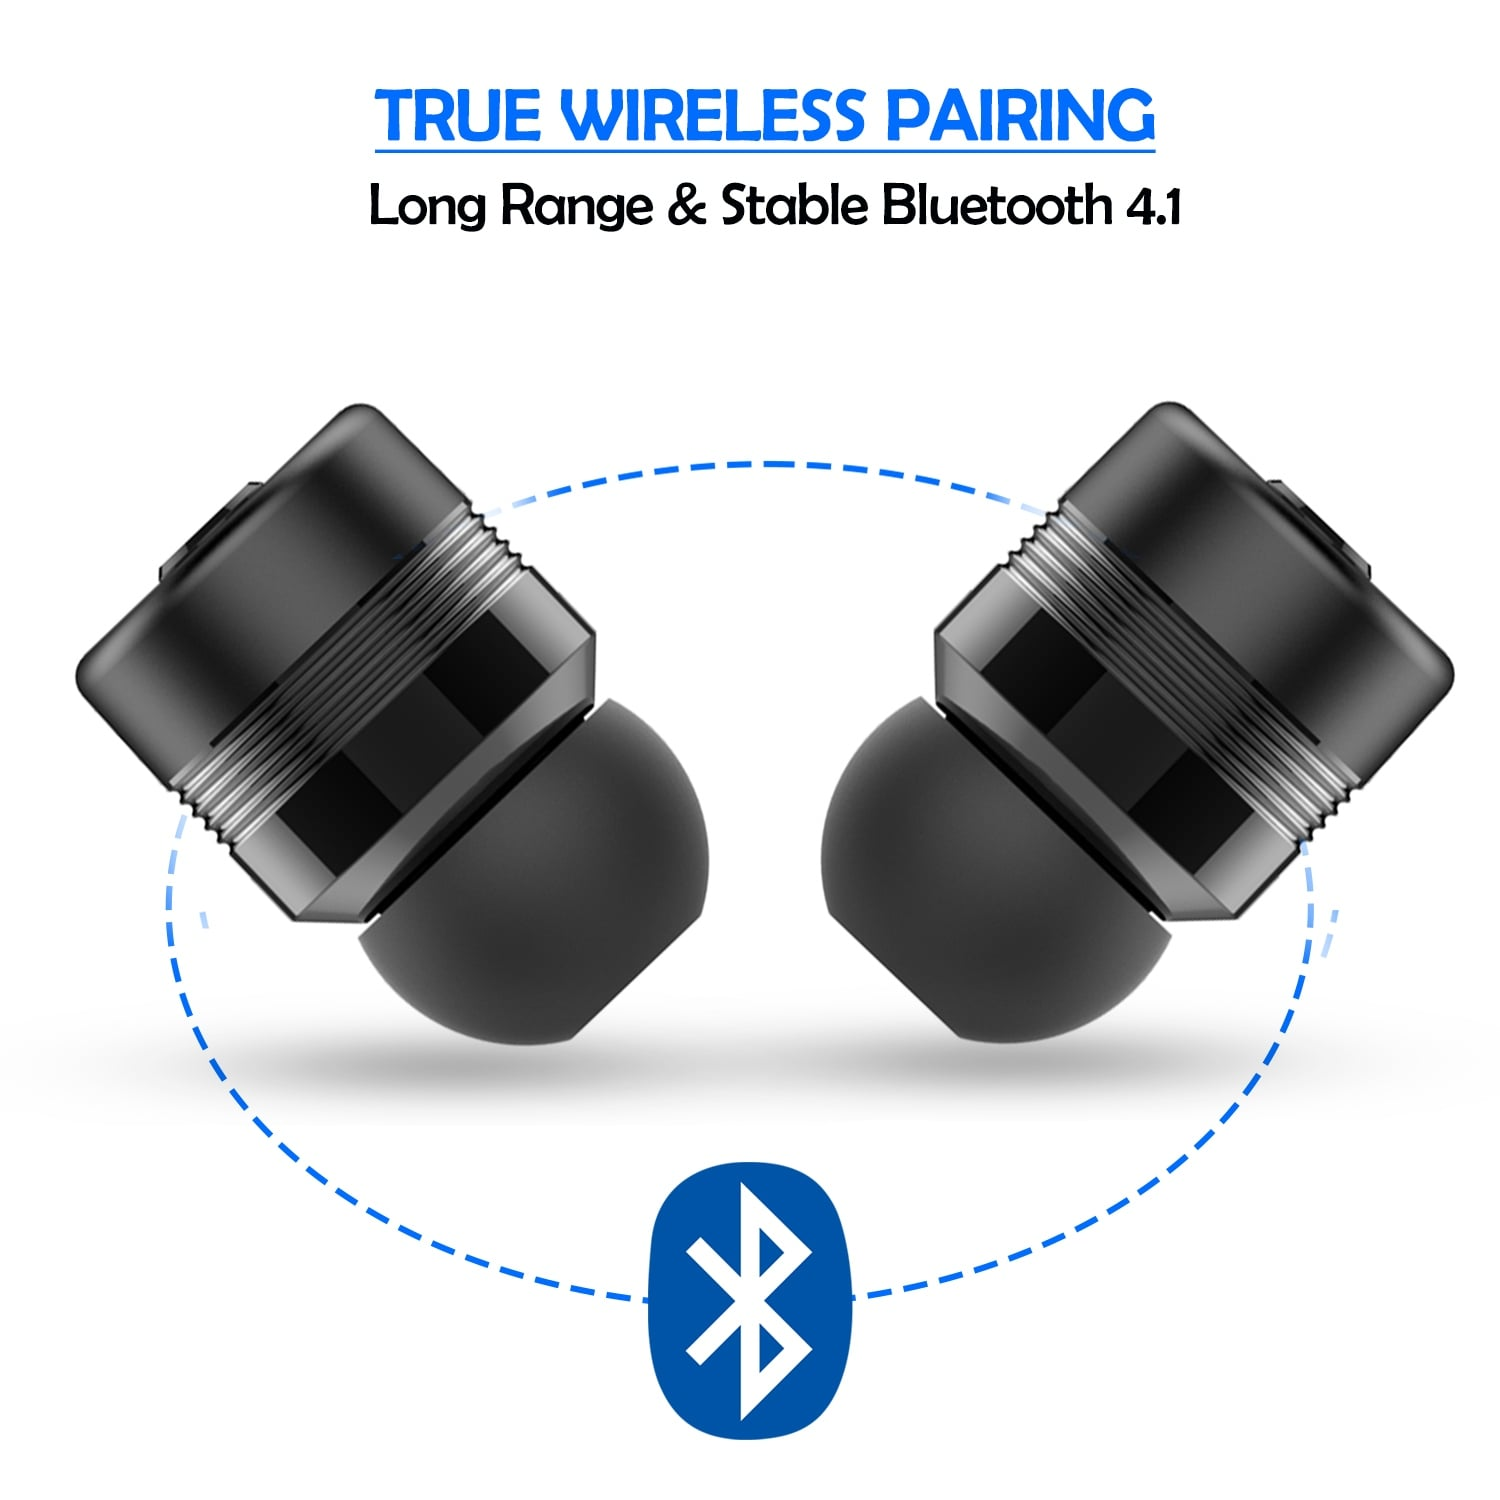 7e28d3fd881 Shop Mini True Wireless Bluetooth Twins Stereo In-Ear Earbuds Headset  Earphone,color Black - Free Shipping On Orders Over $45 - Overstock -  22729721